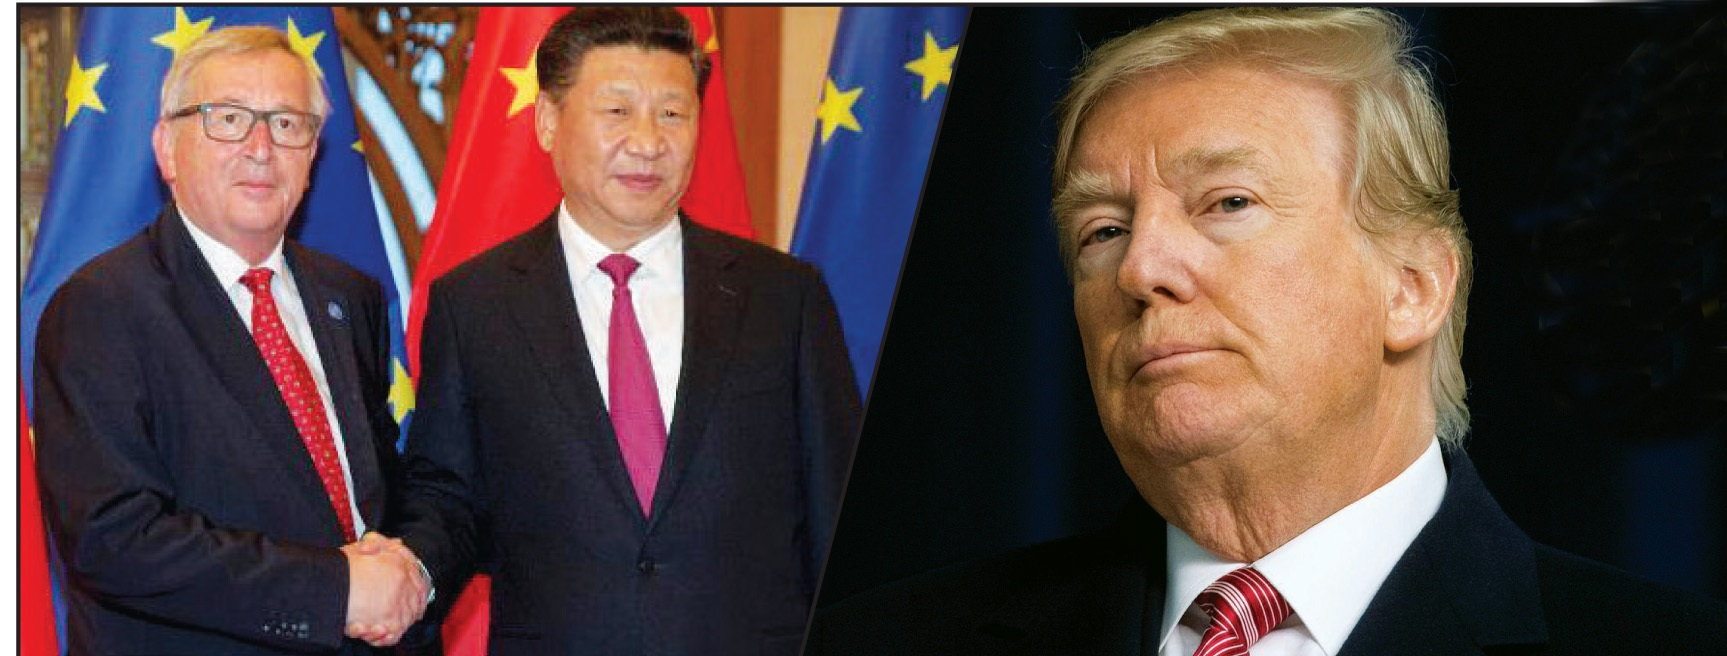 China and Europe together should teach Trump a lesson